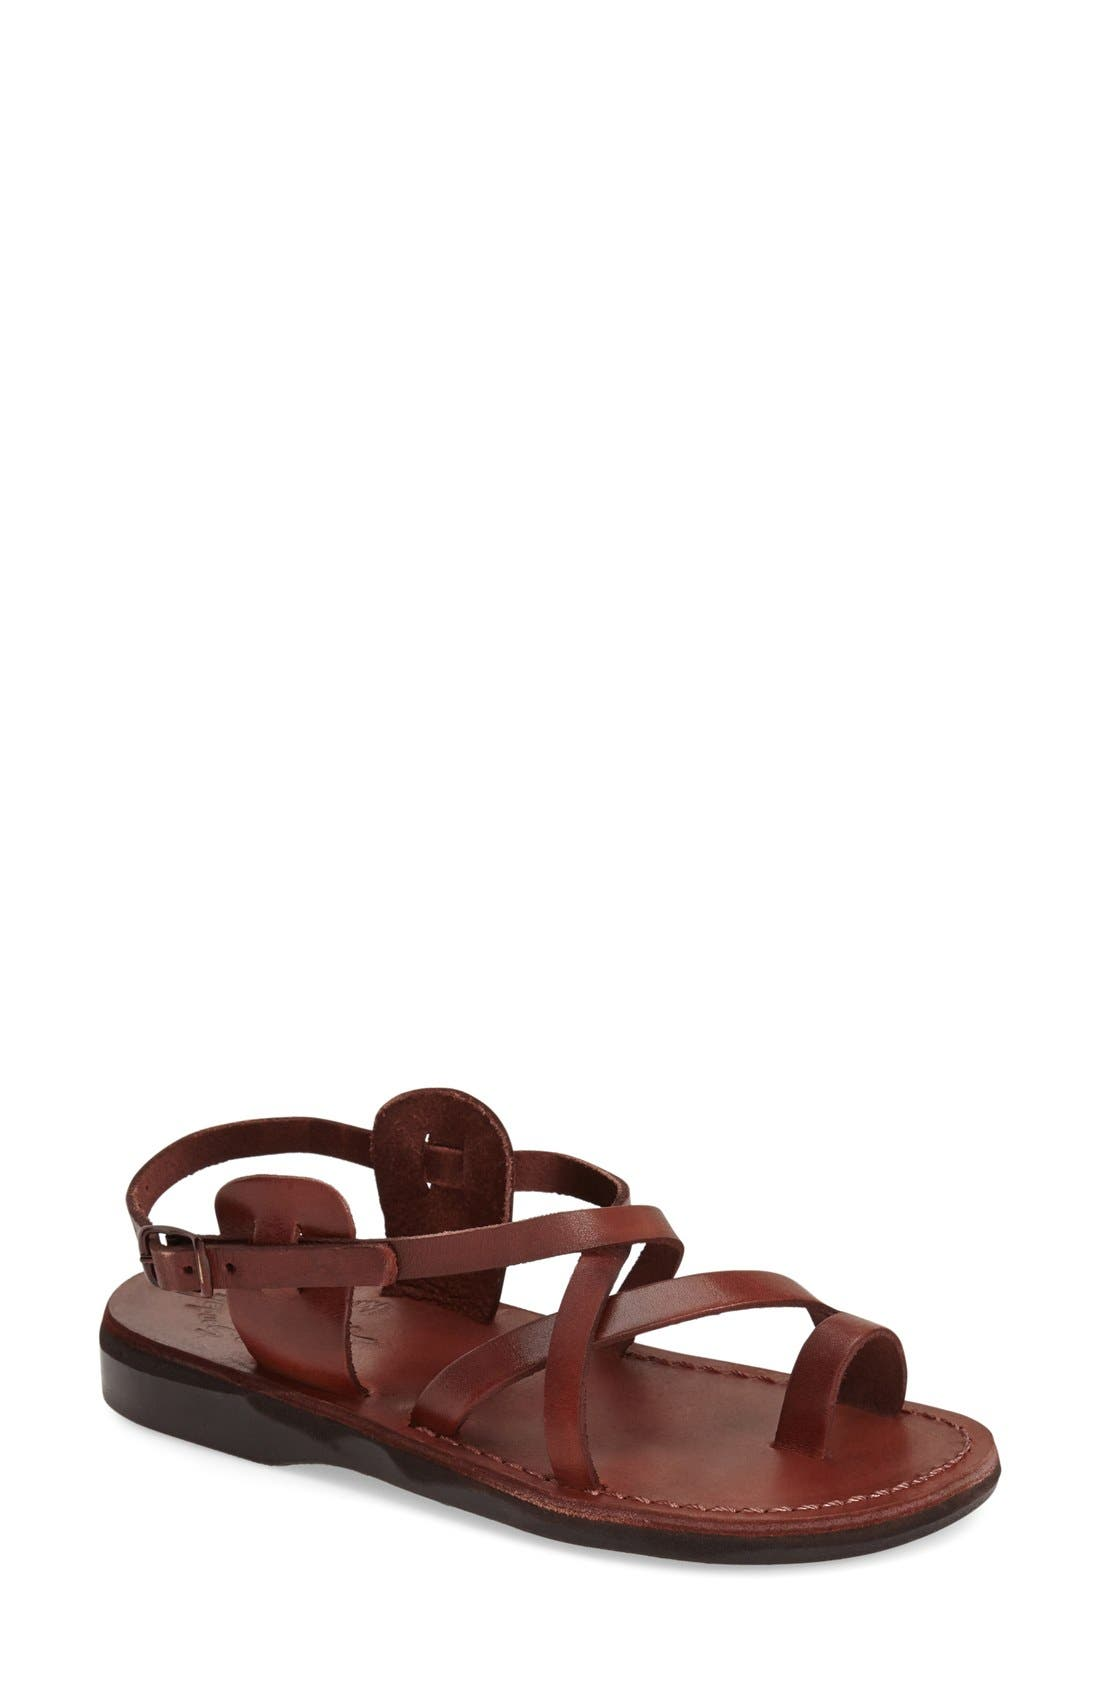 'The Good Shepard' Strappy Sandal,                             Main thumbnail 1, color,                             Brown Leather